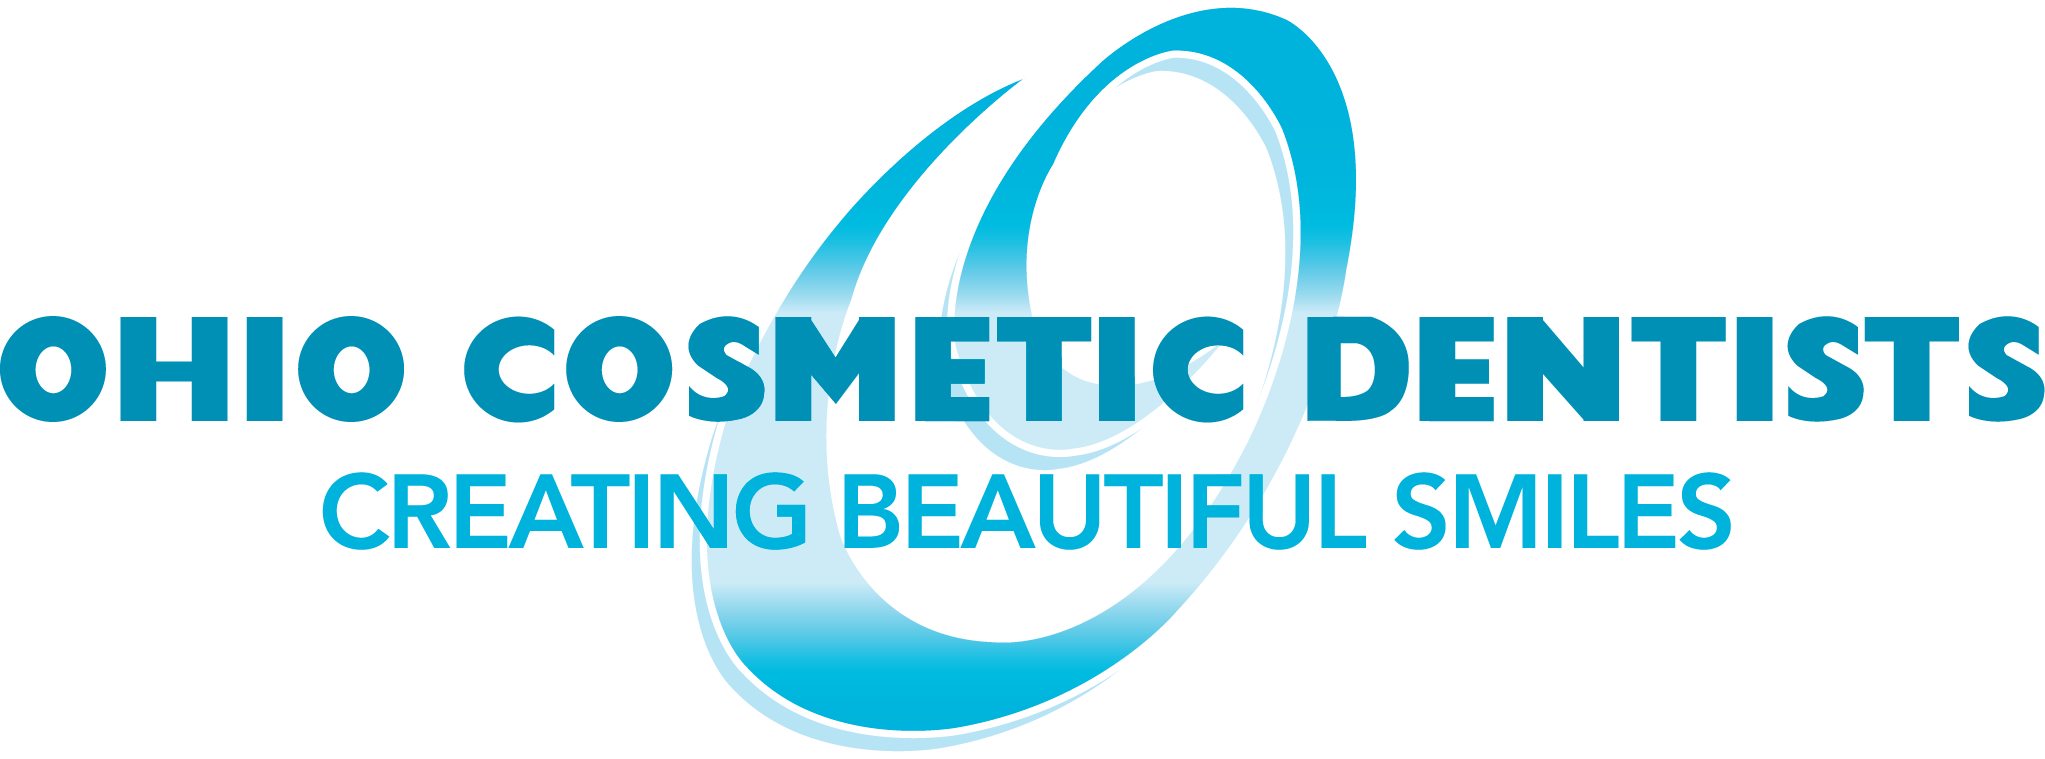 Visit Ohio Cosmetic Dentists